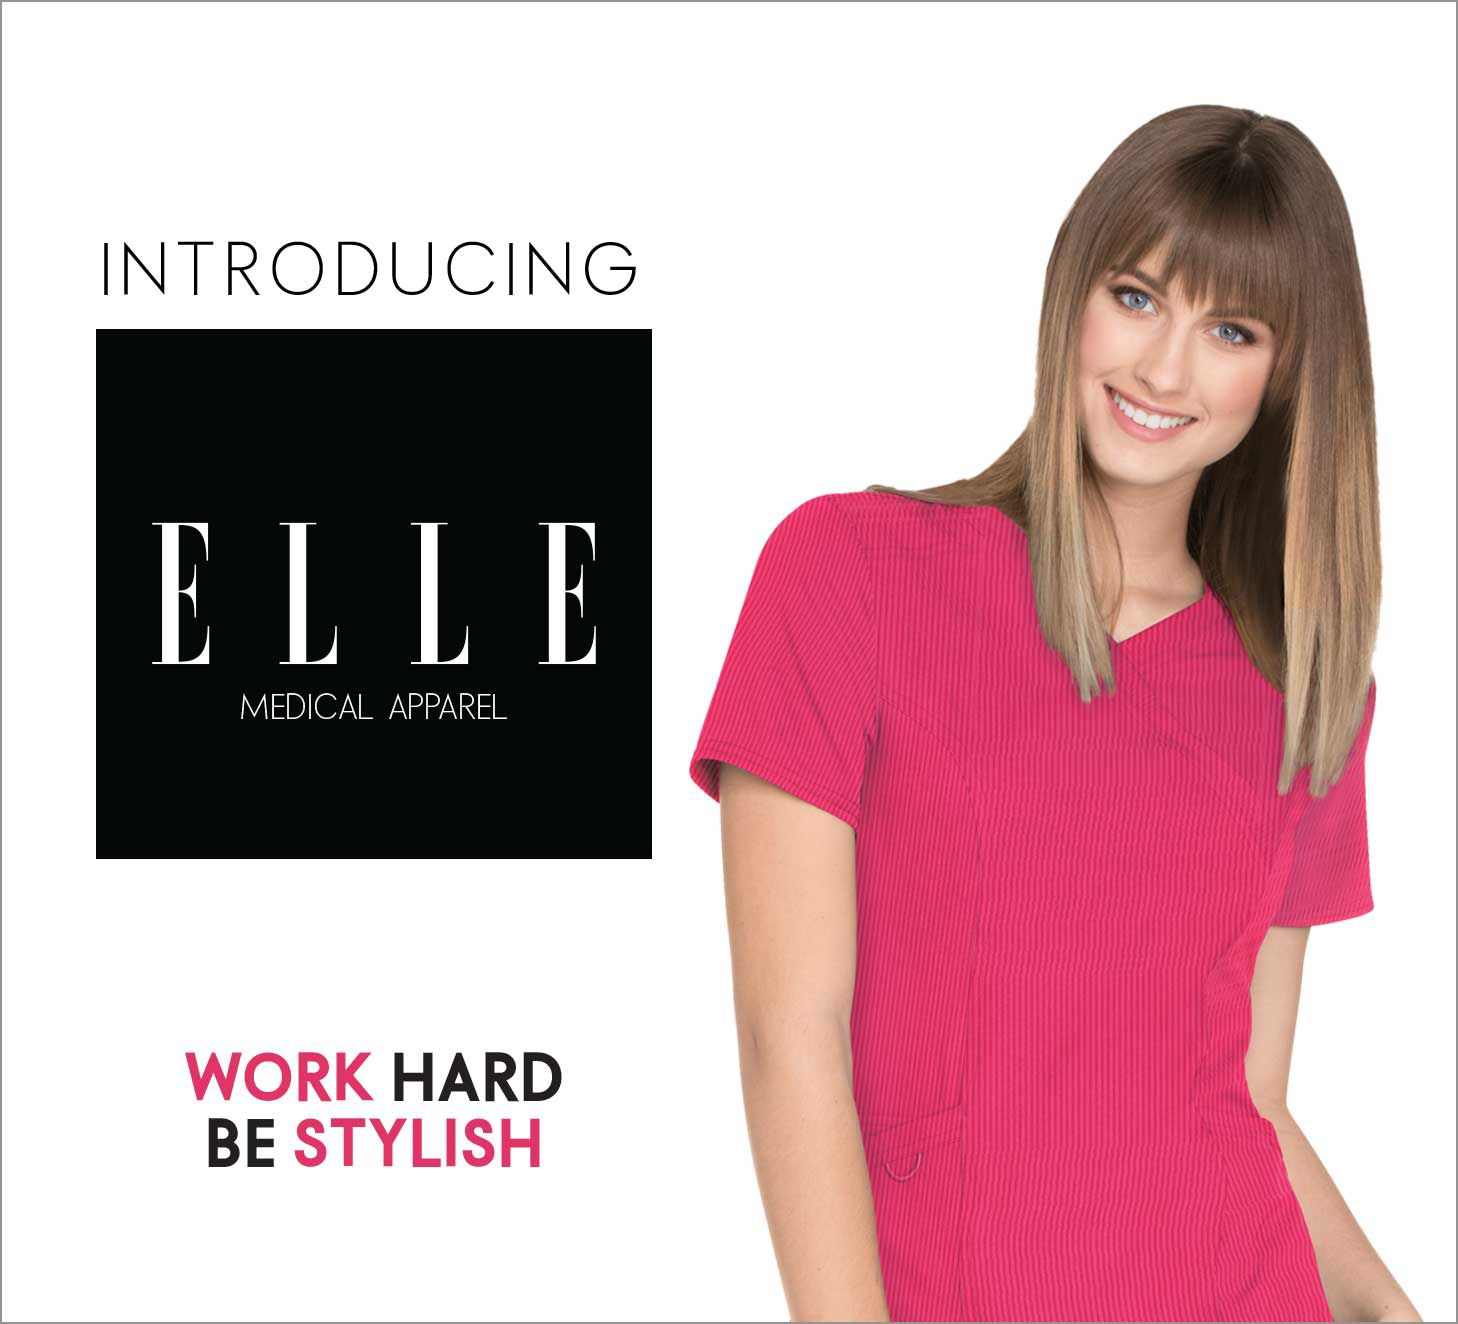 Introducing Elle